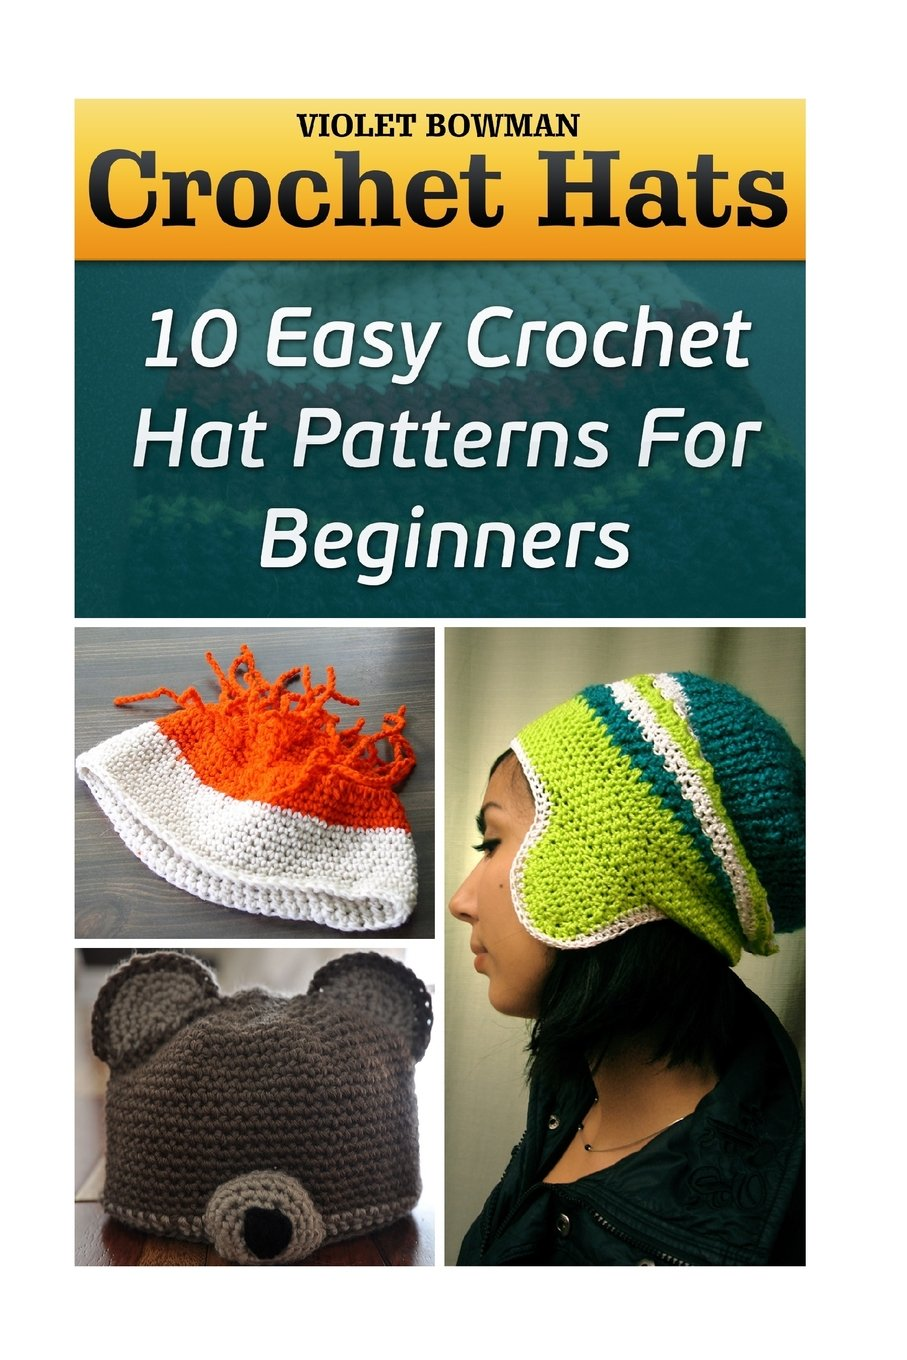 2dec808acb5 Crochet Hats  10 Easy Crochet Hat Patterns For Beginners Paperback –  November 3